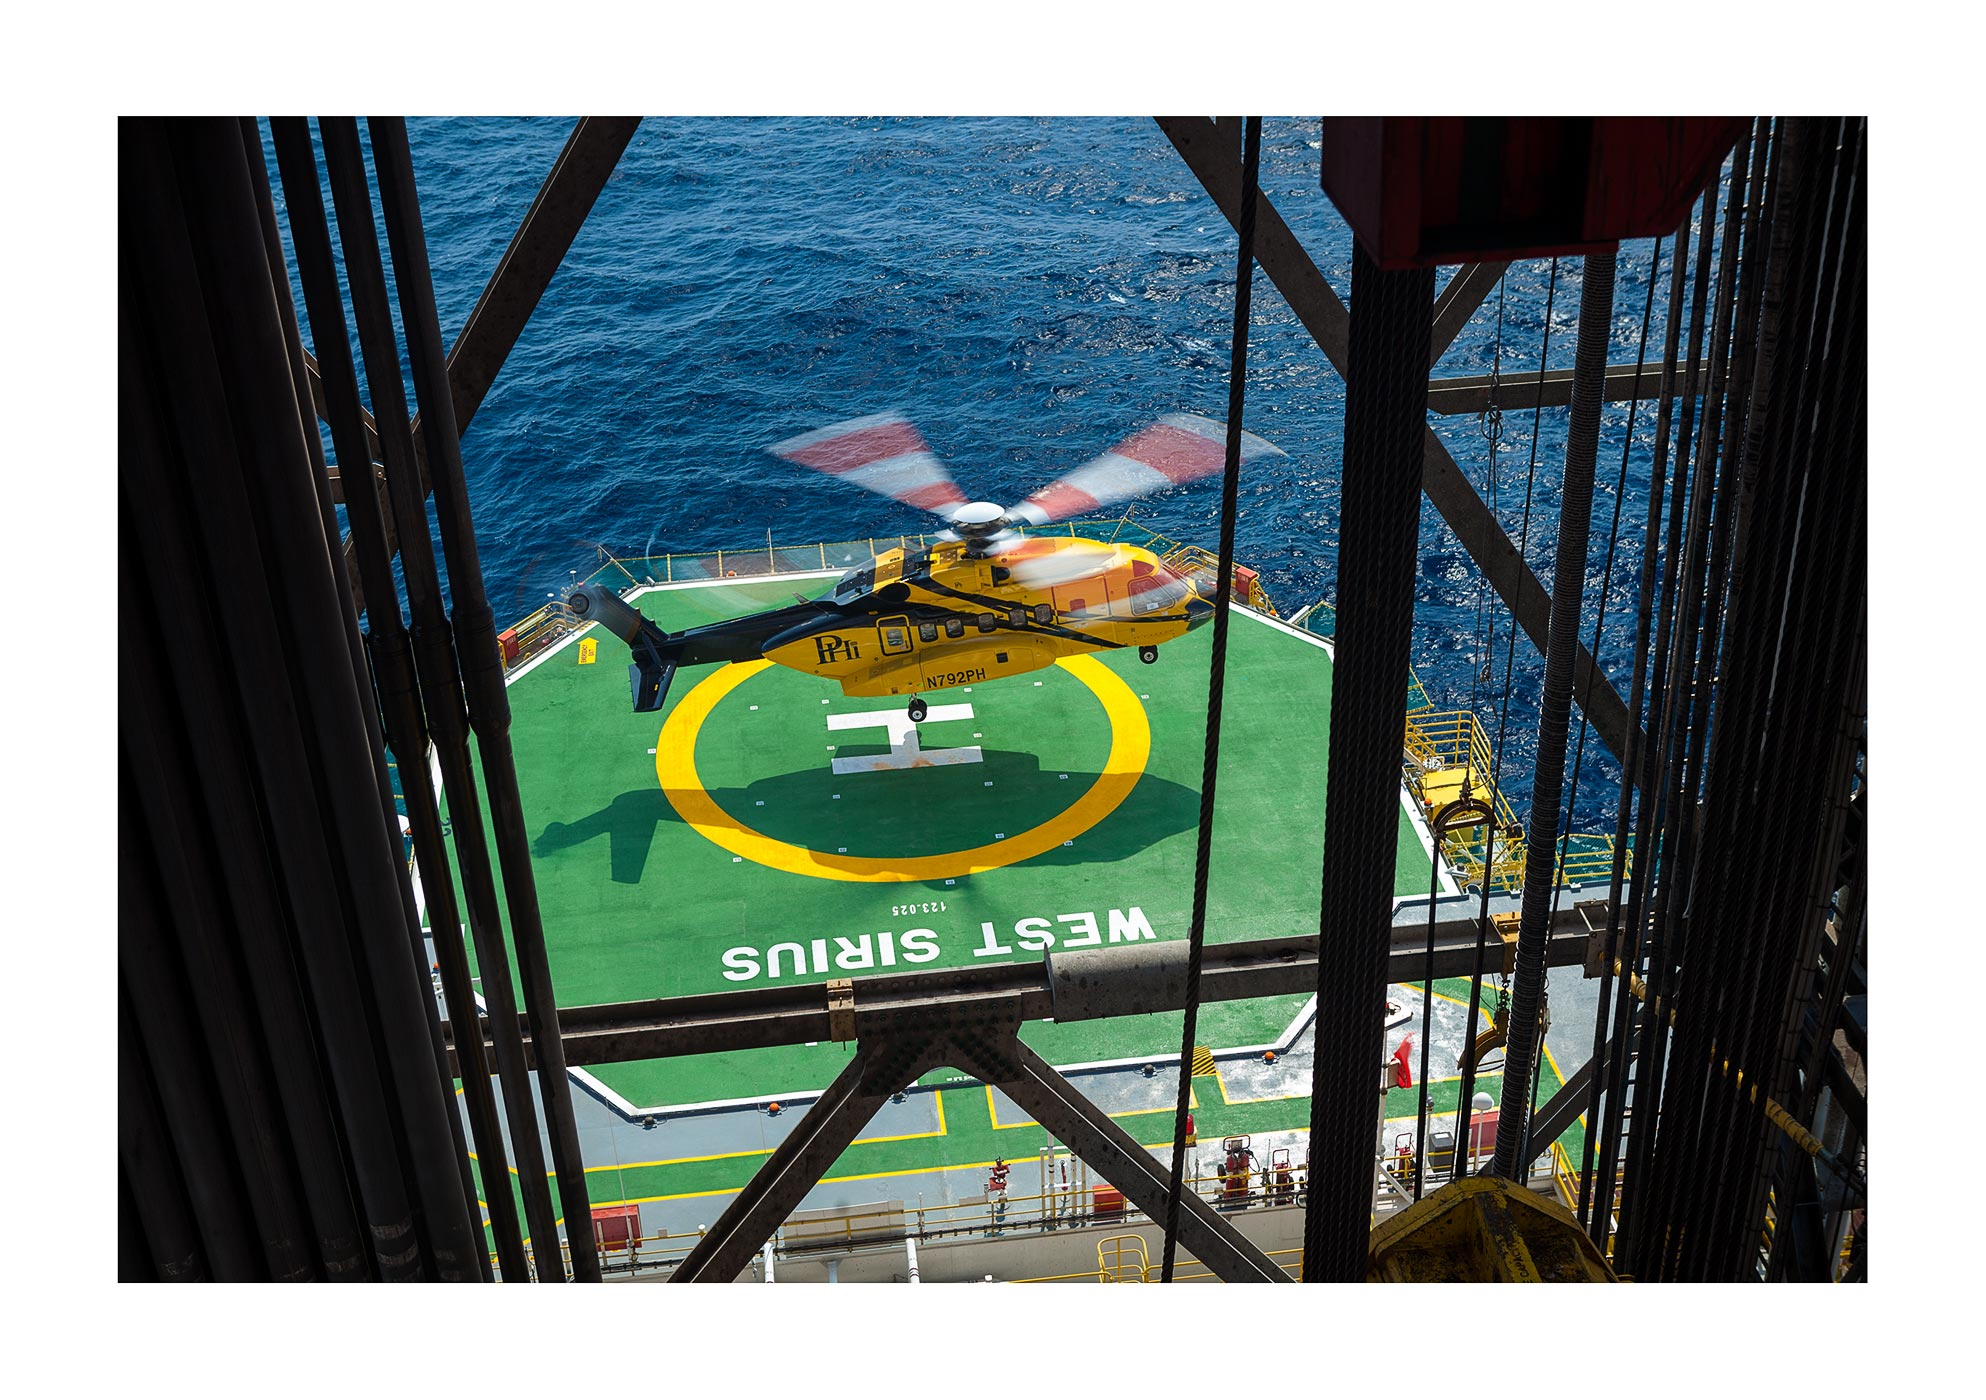 HELICOPTER OFFSHORE OIL RIG HELIPAD